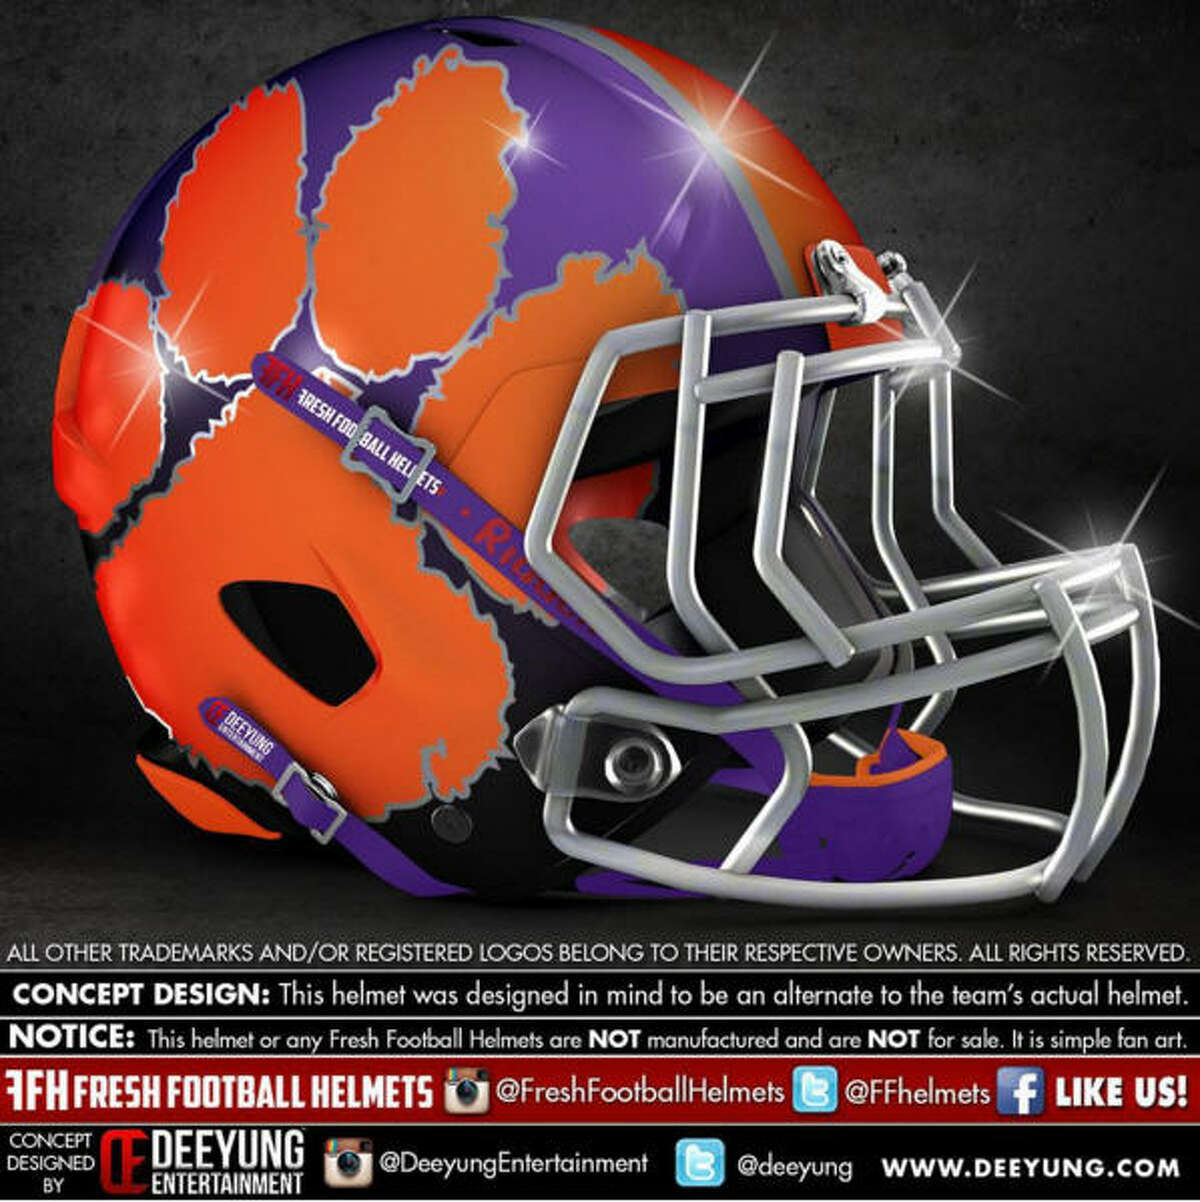 Clemson Tigers concept football helmet by Dylan Young of Deeyung Entertainment.